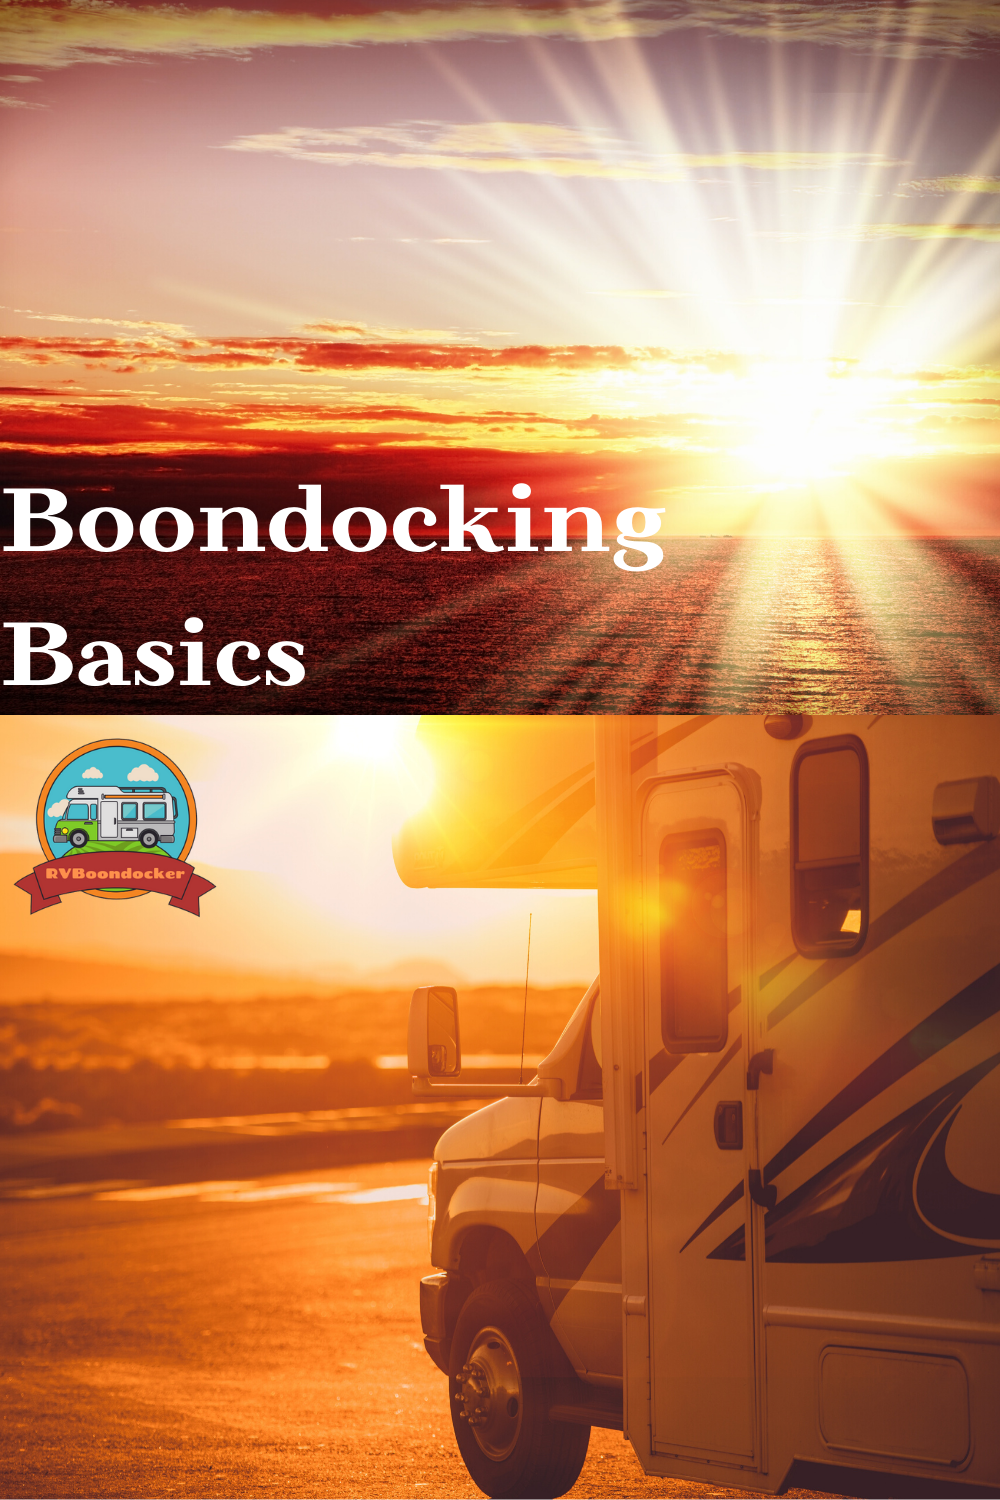 Boondocking - What is Boondocking? — RVBoondocker